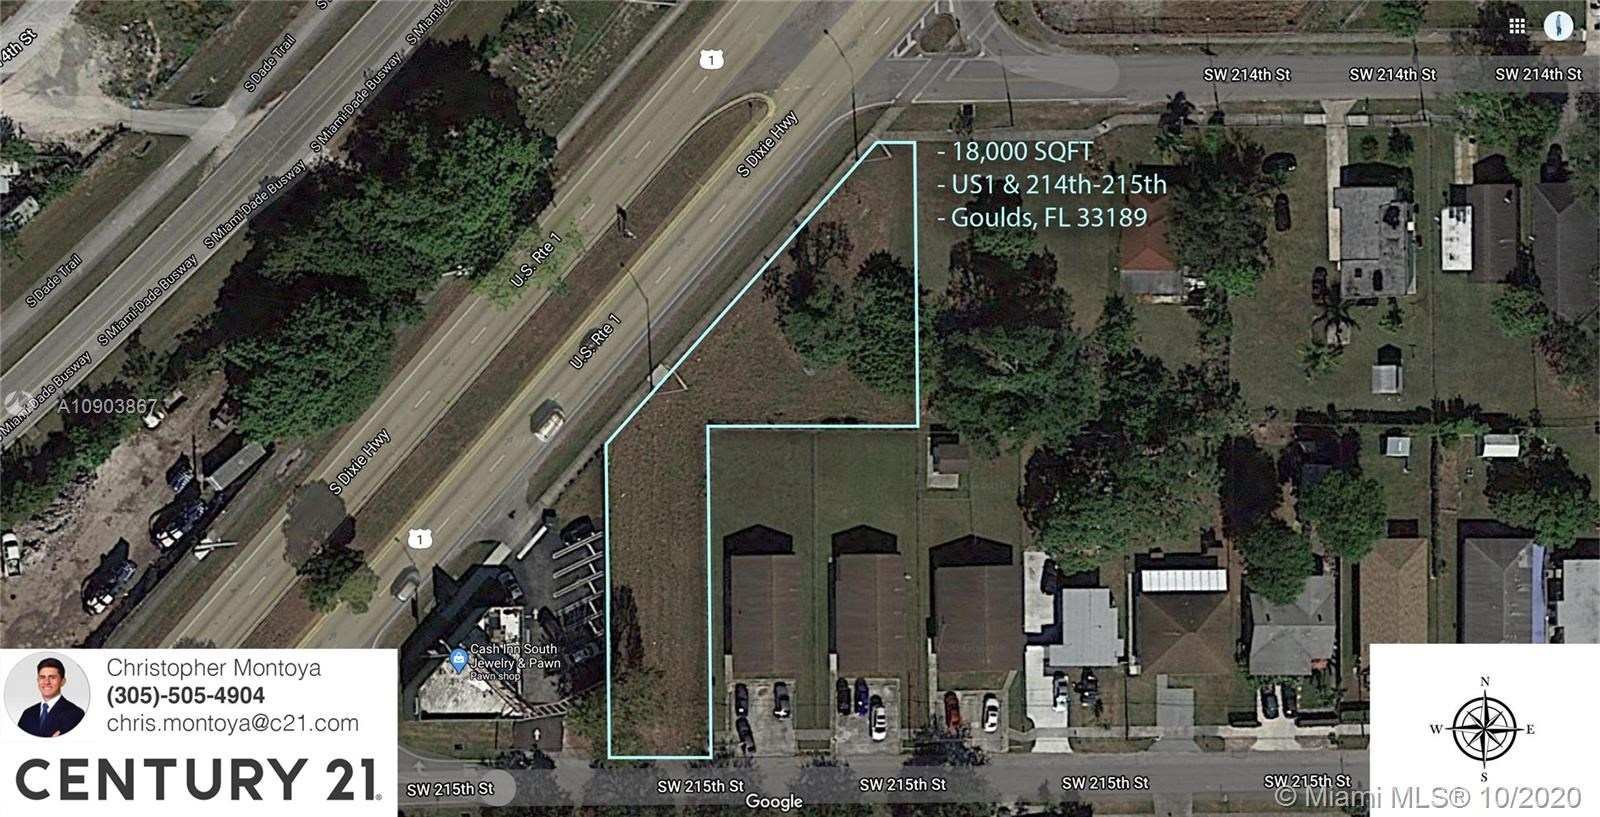 214-215th, Goulds, FL 33189